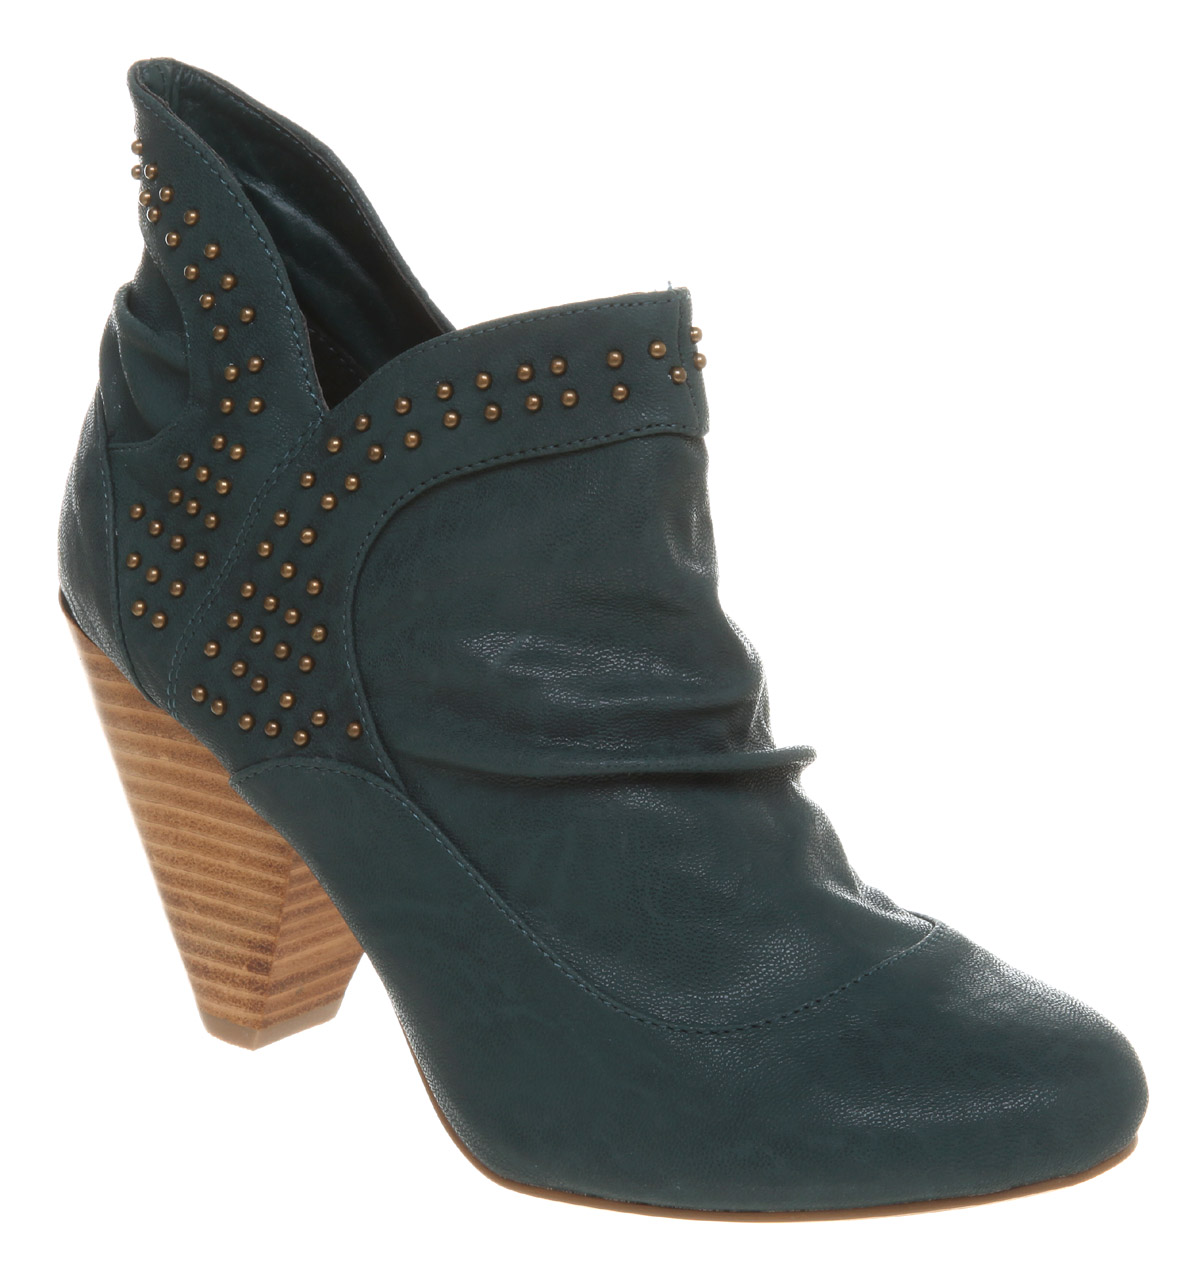 Vegan studded teal ankle boots